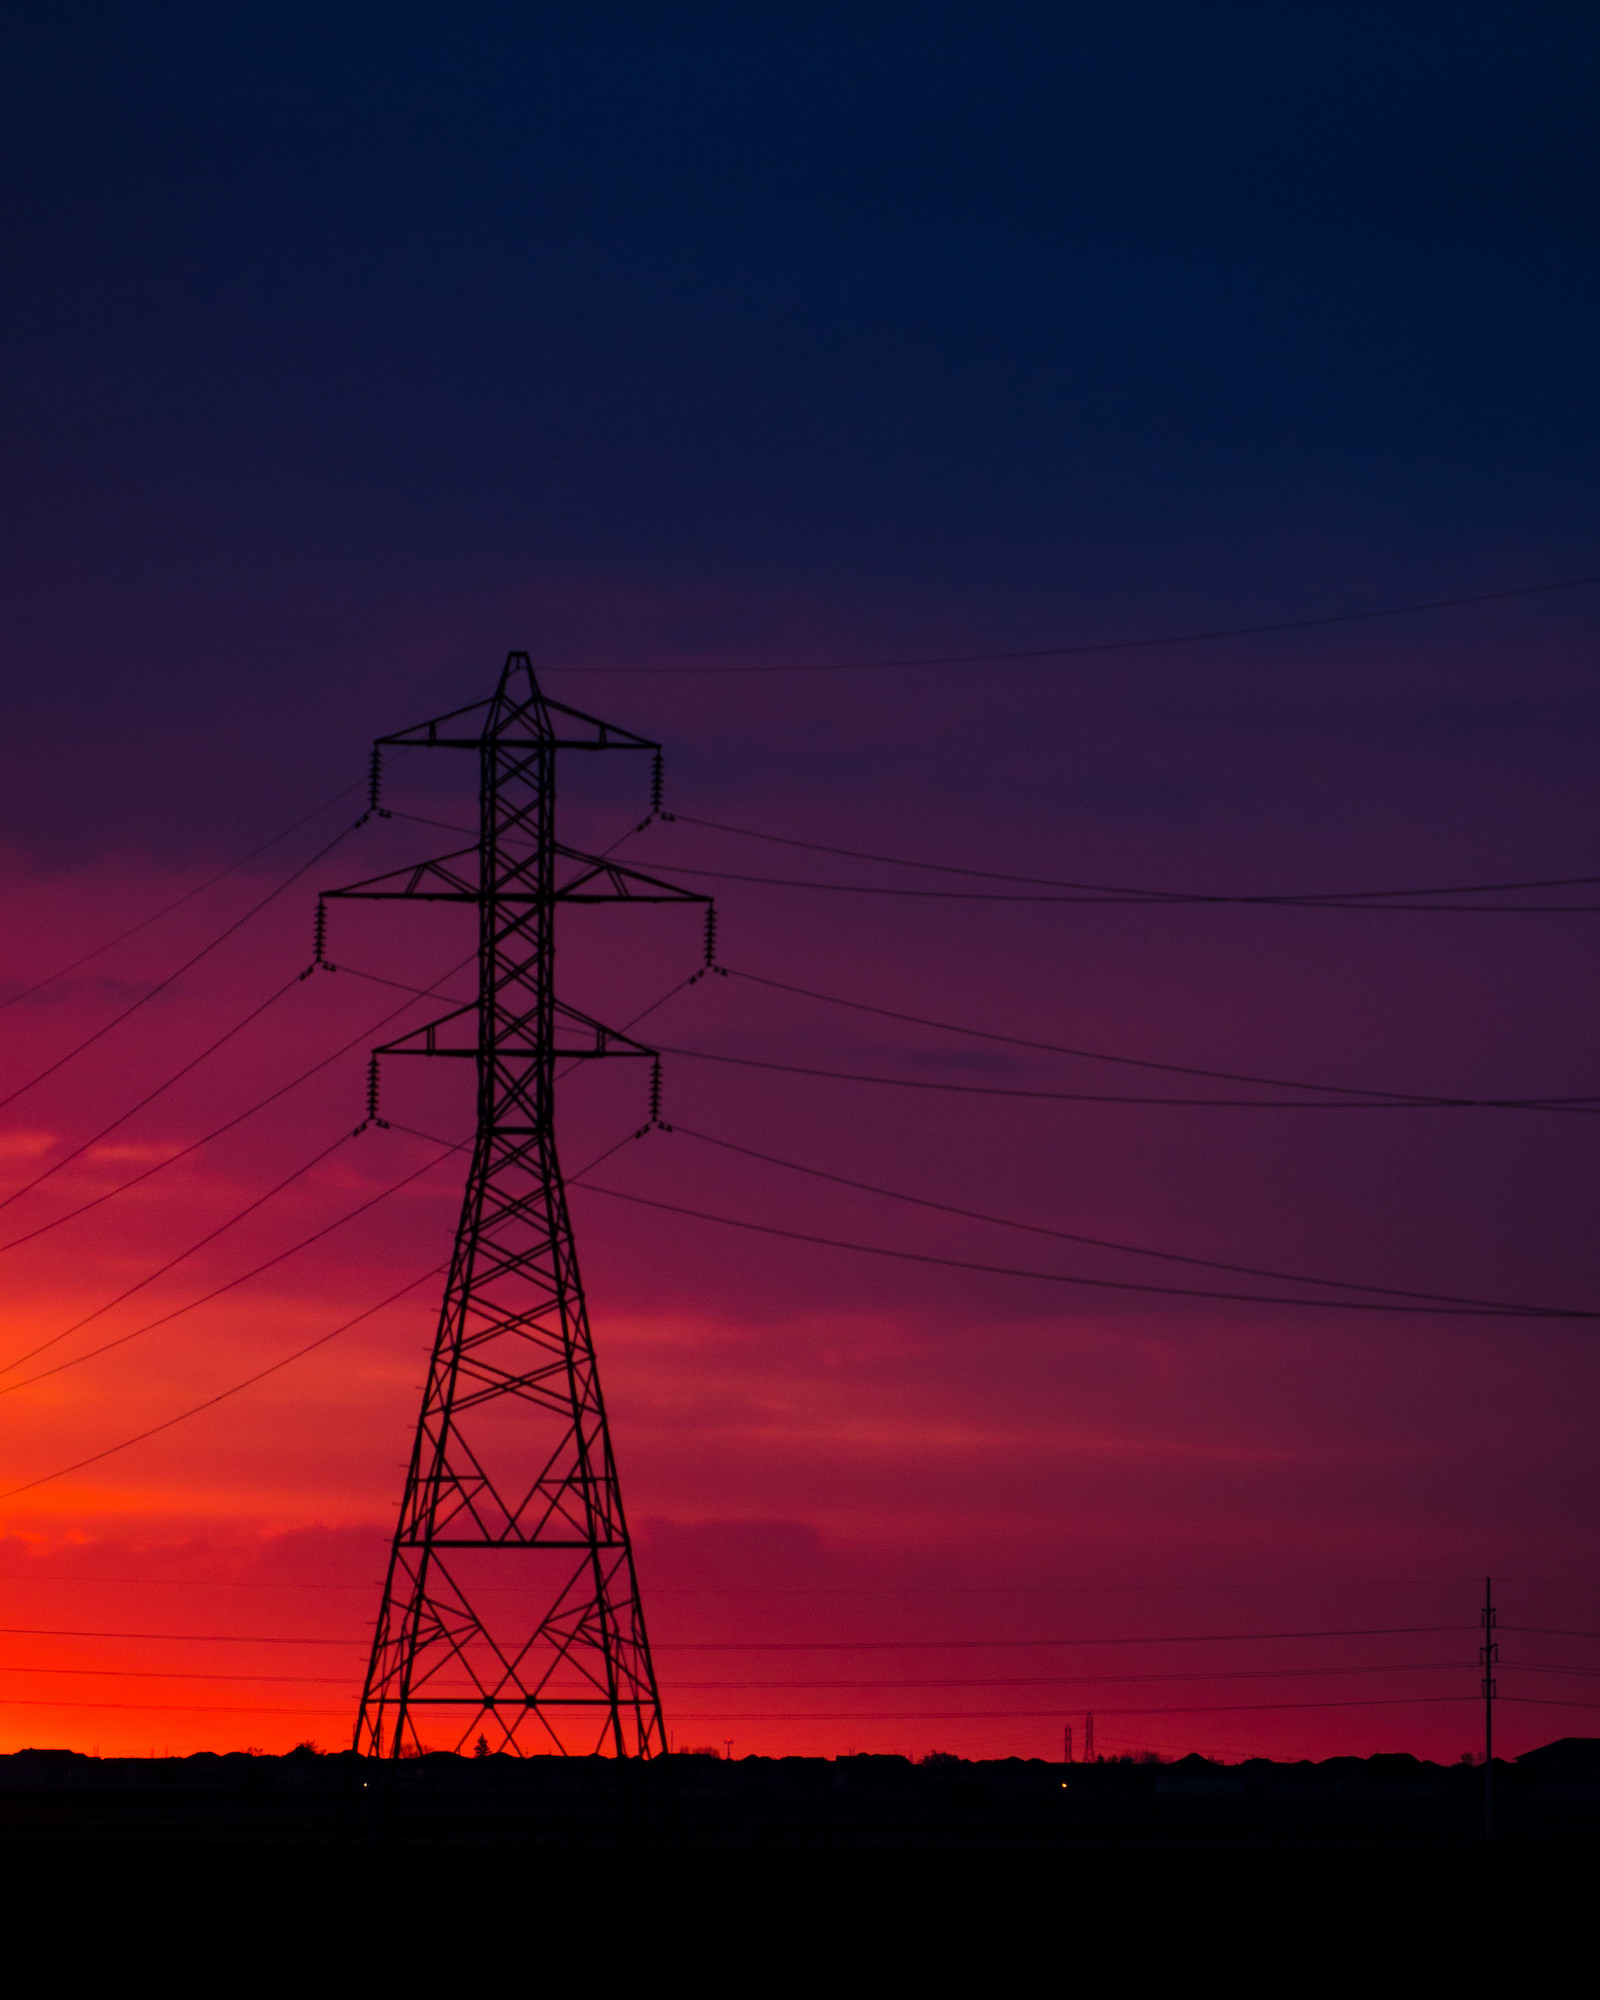 polar-visual-taylor-sheppard-photography-photo-video-motion-design-graphic-stonewall-winnipeg-manitoba-sunrise-powerline-sky-color-colour-perimeter-route-90.jpg